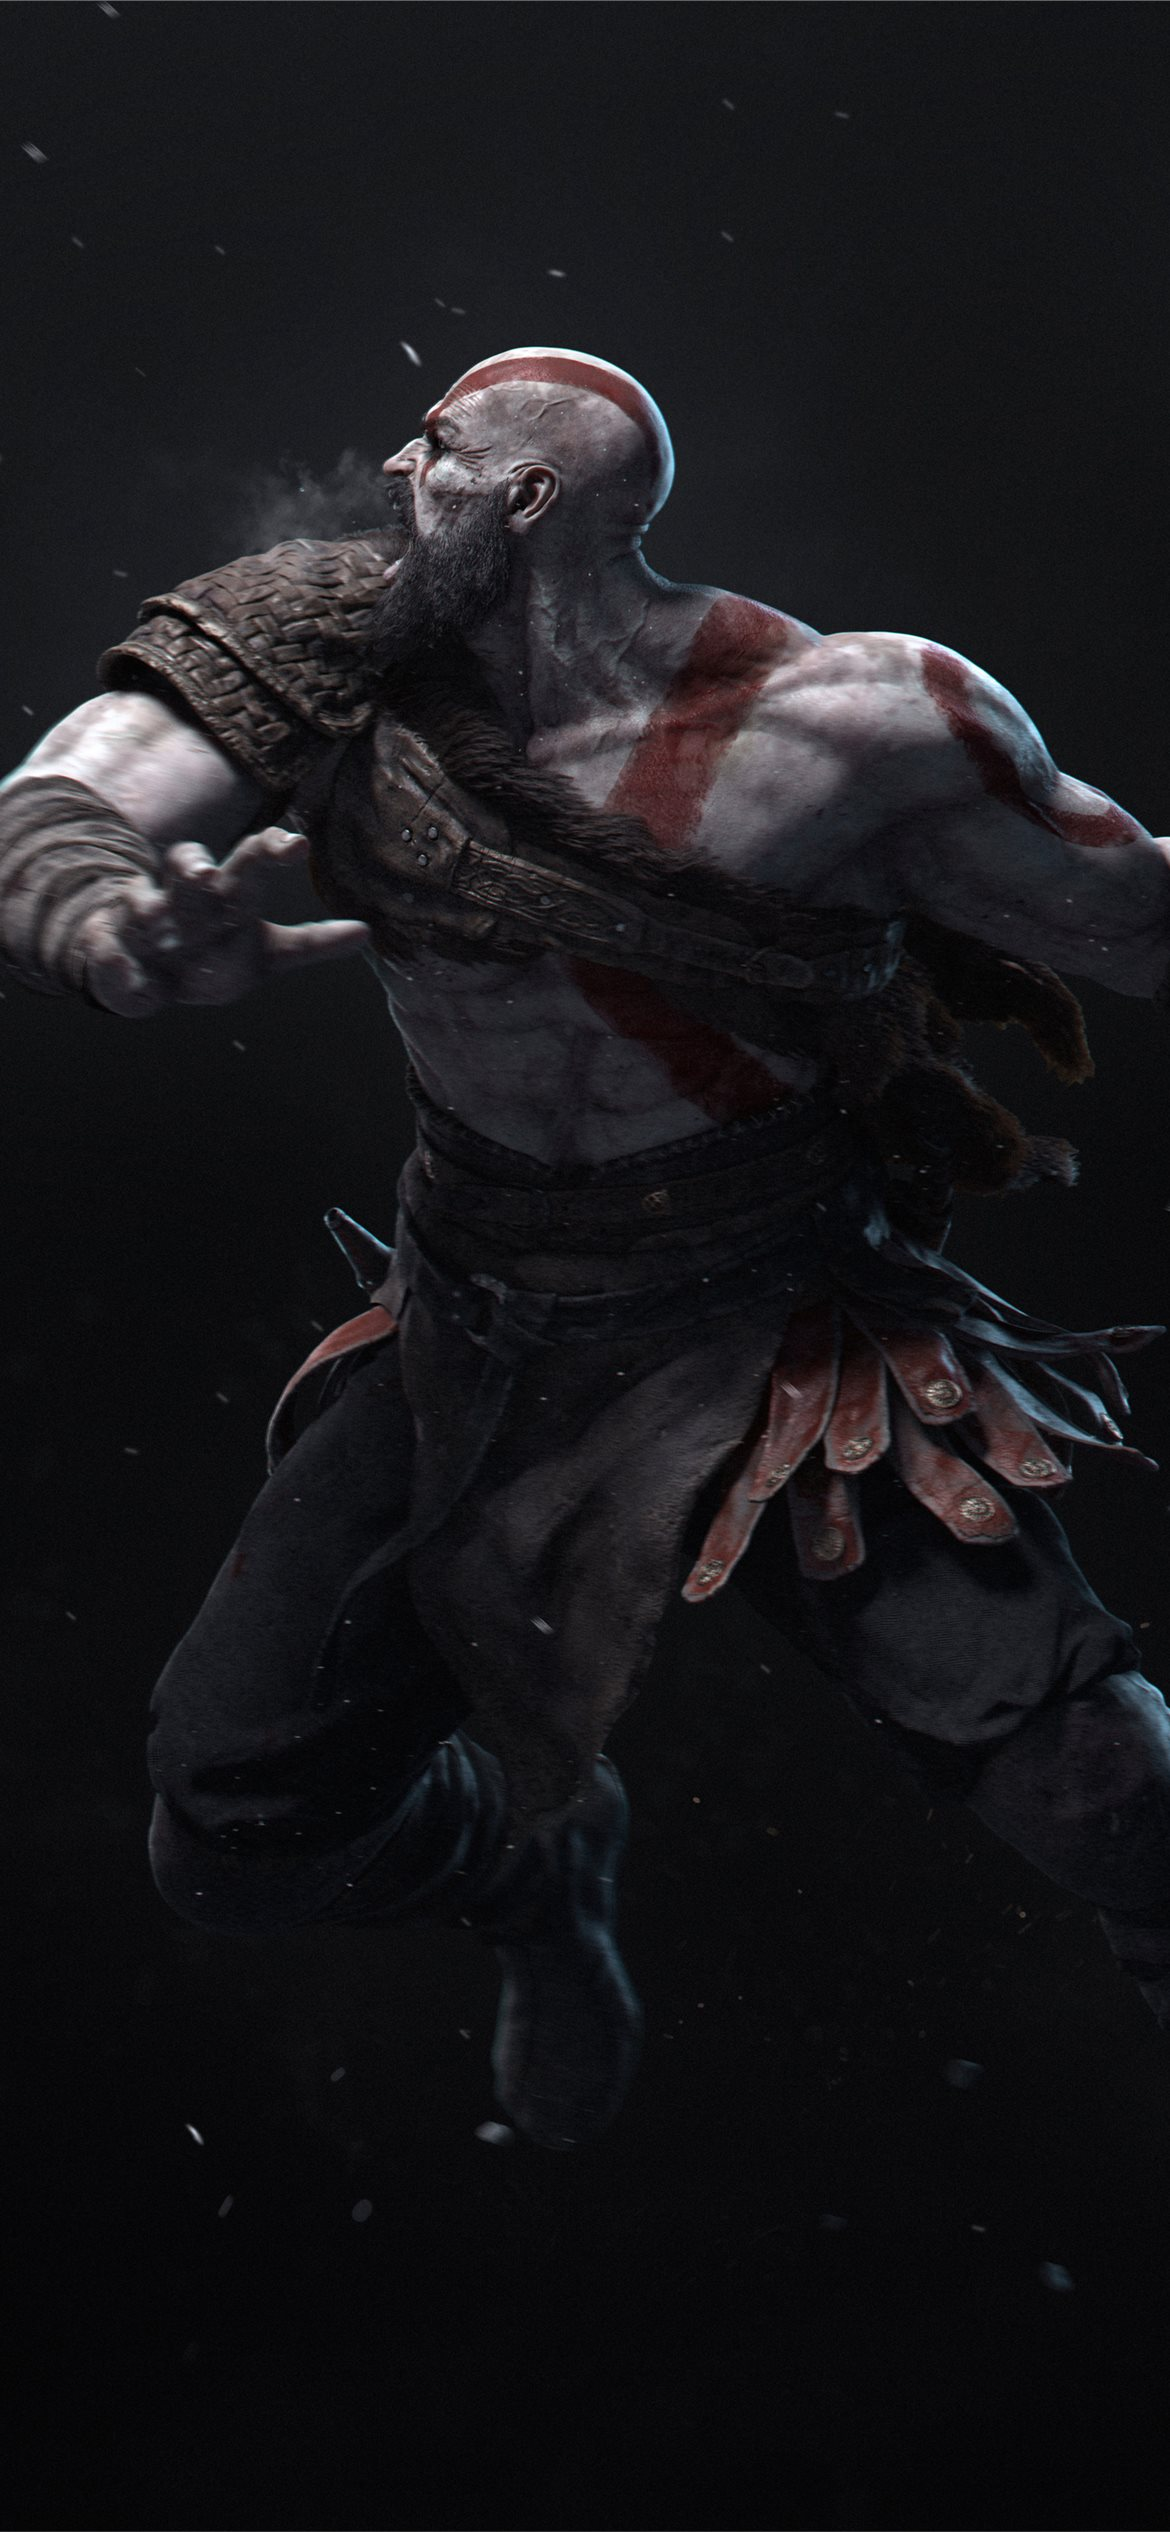 Kratos Hitting With Axe 4k Iphone 12 Wallpapers Free Download